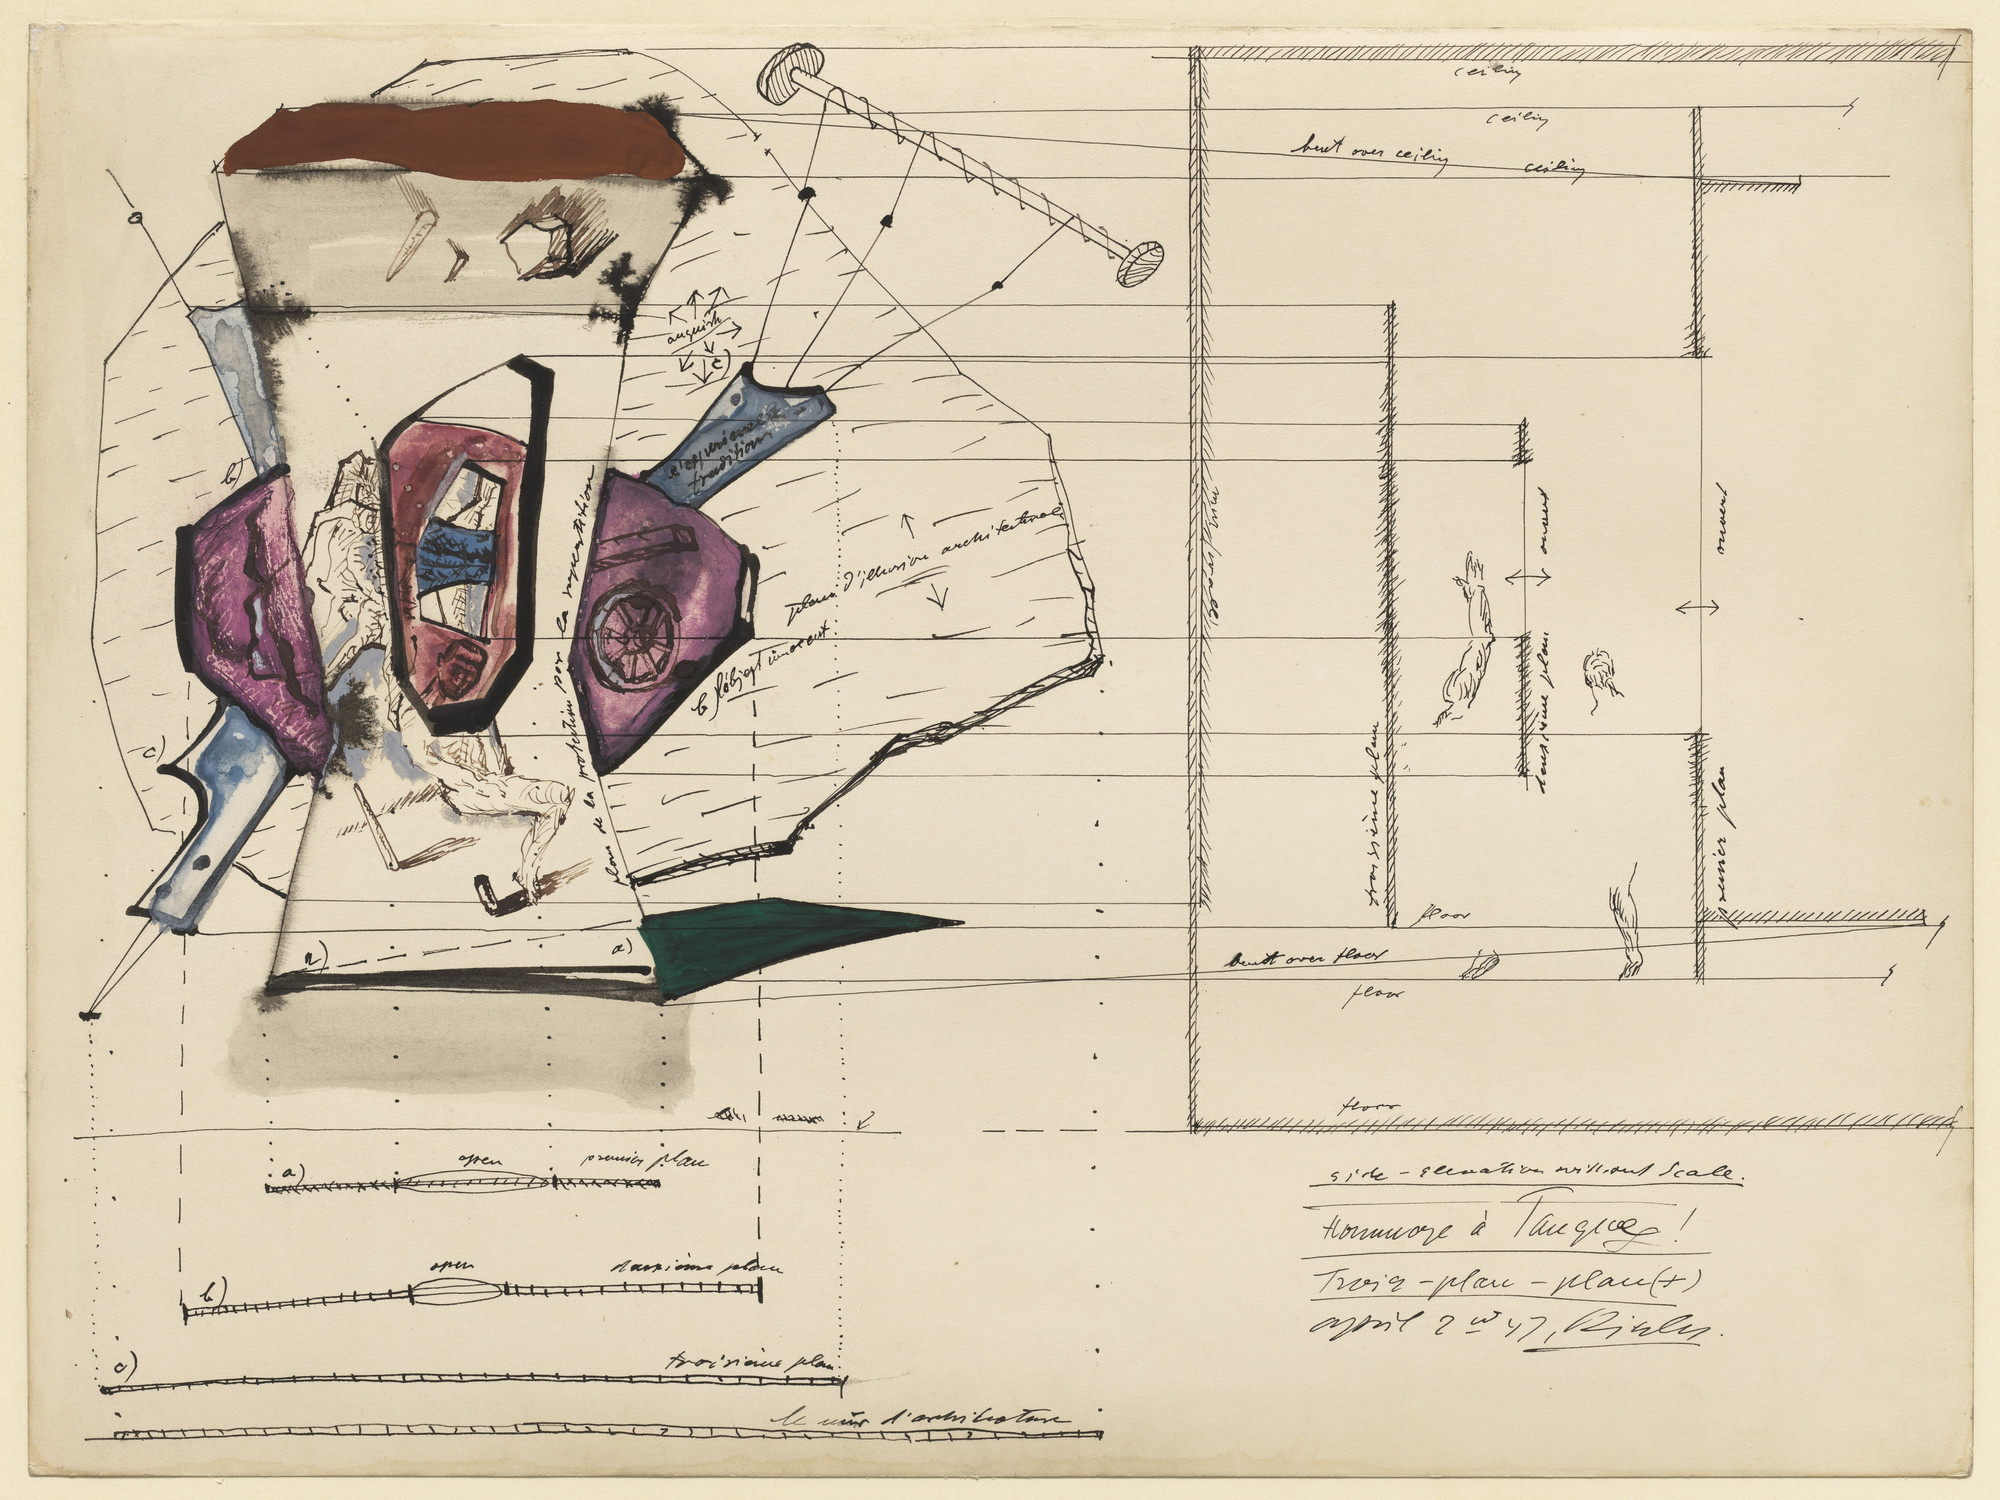 Frederick Kiesler. Architectural Plan for the Room of Superstitions. 1947